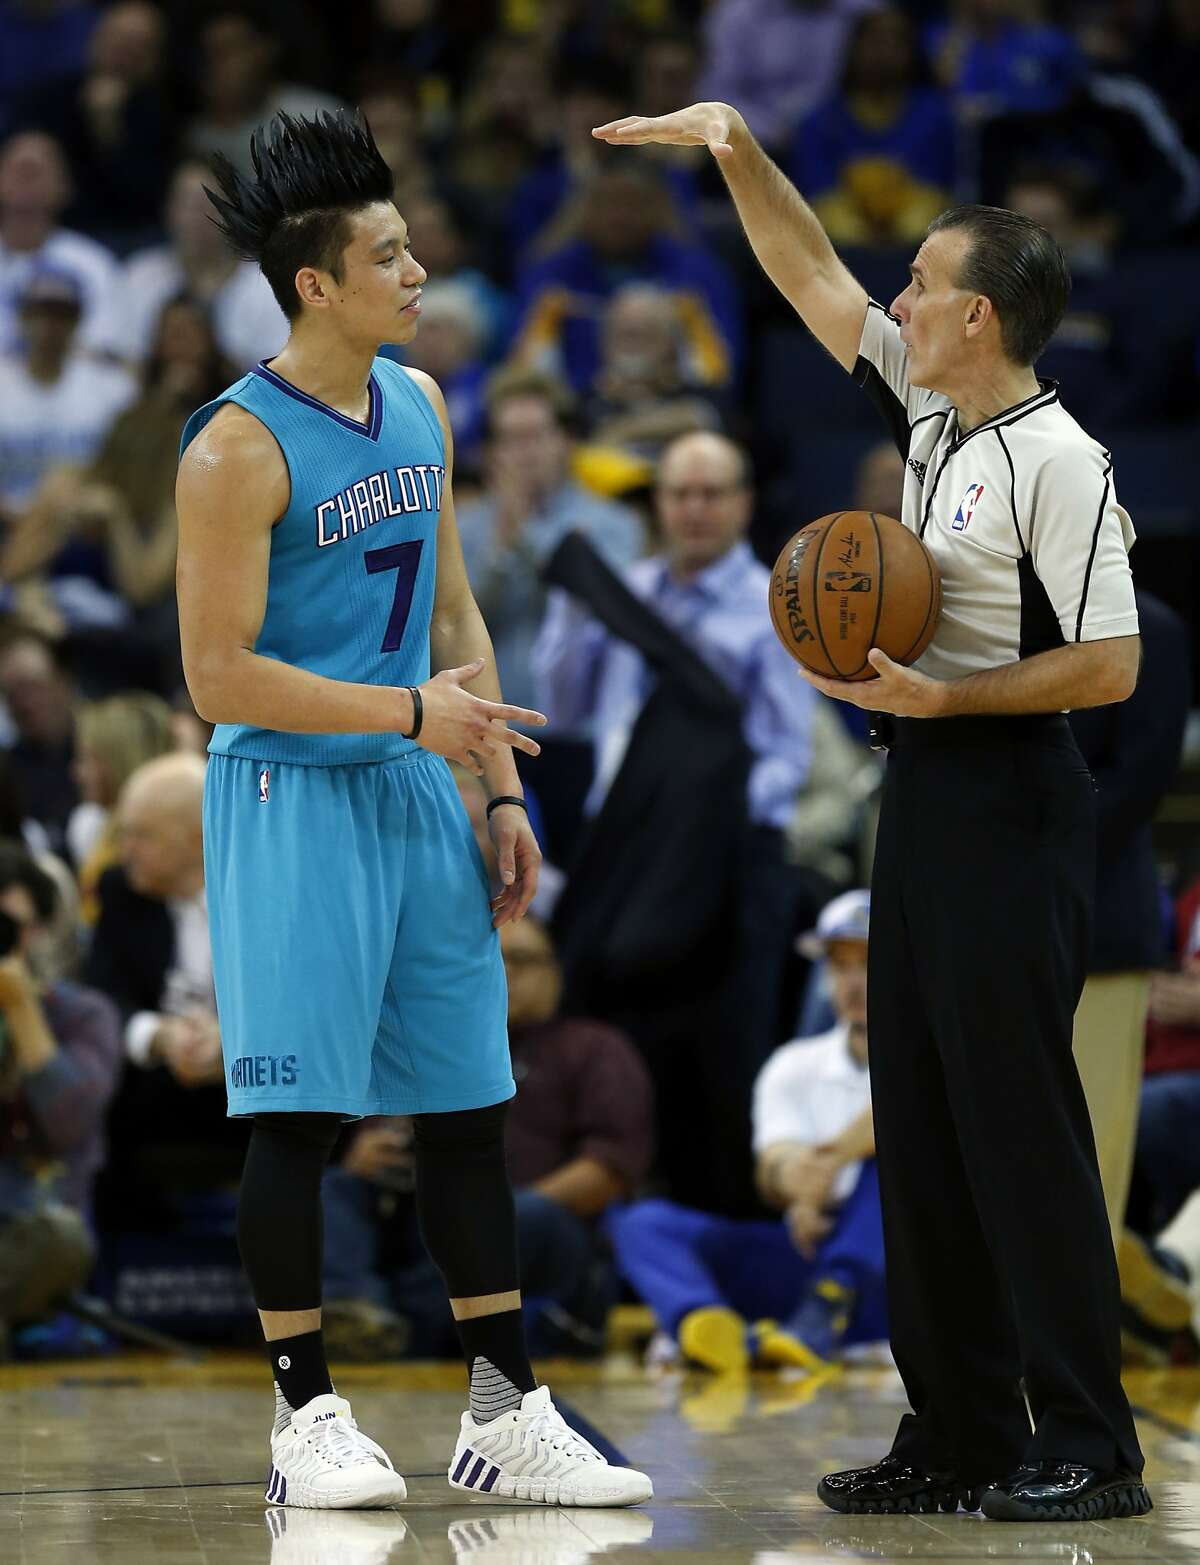 Charlotte Hornets' Jeremy Lin listens to an official in 1st quarter during NBA game against Golden State Warriors at Oracle Arena in Oakland, Calif., on Monday, January 4, 2016.